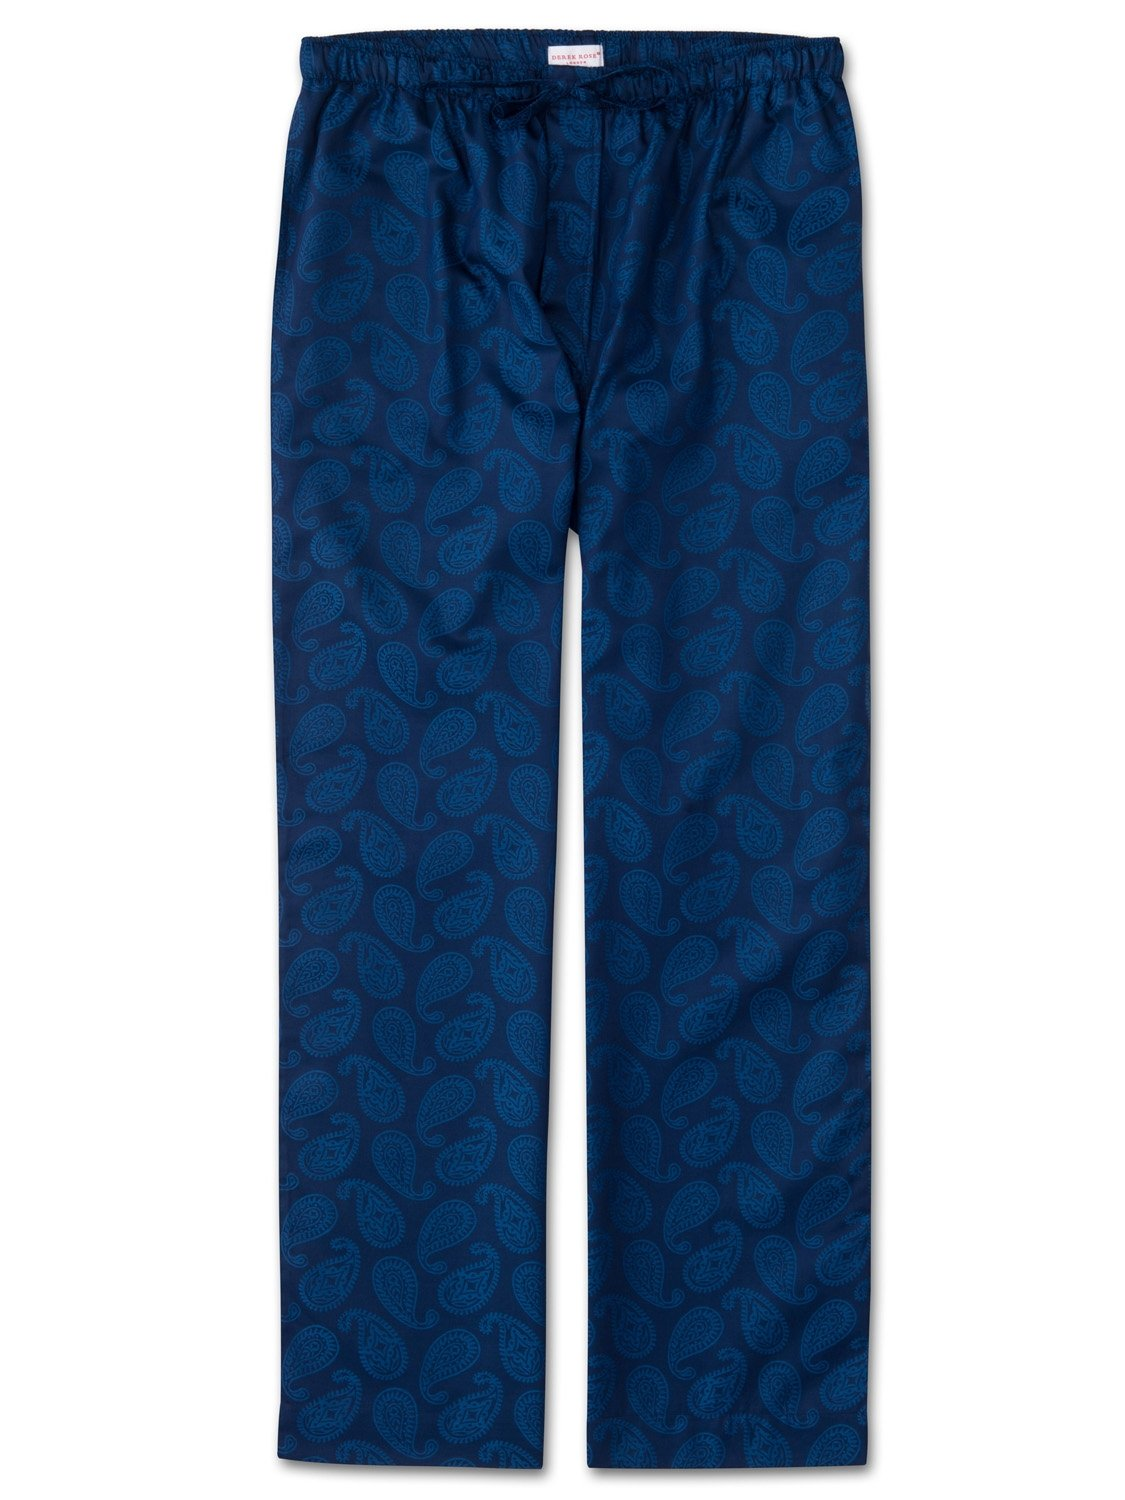 Men's Lounge Trousers Paris 13 Cotton Jacquard Navy